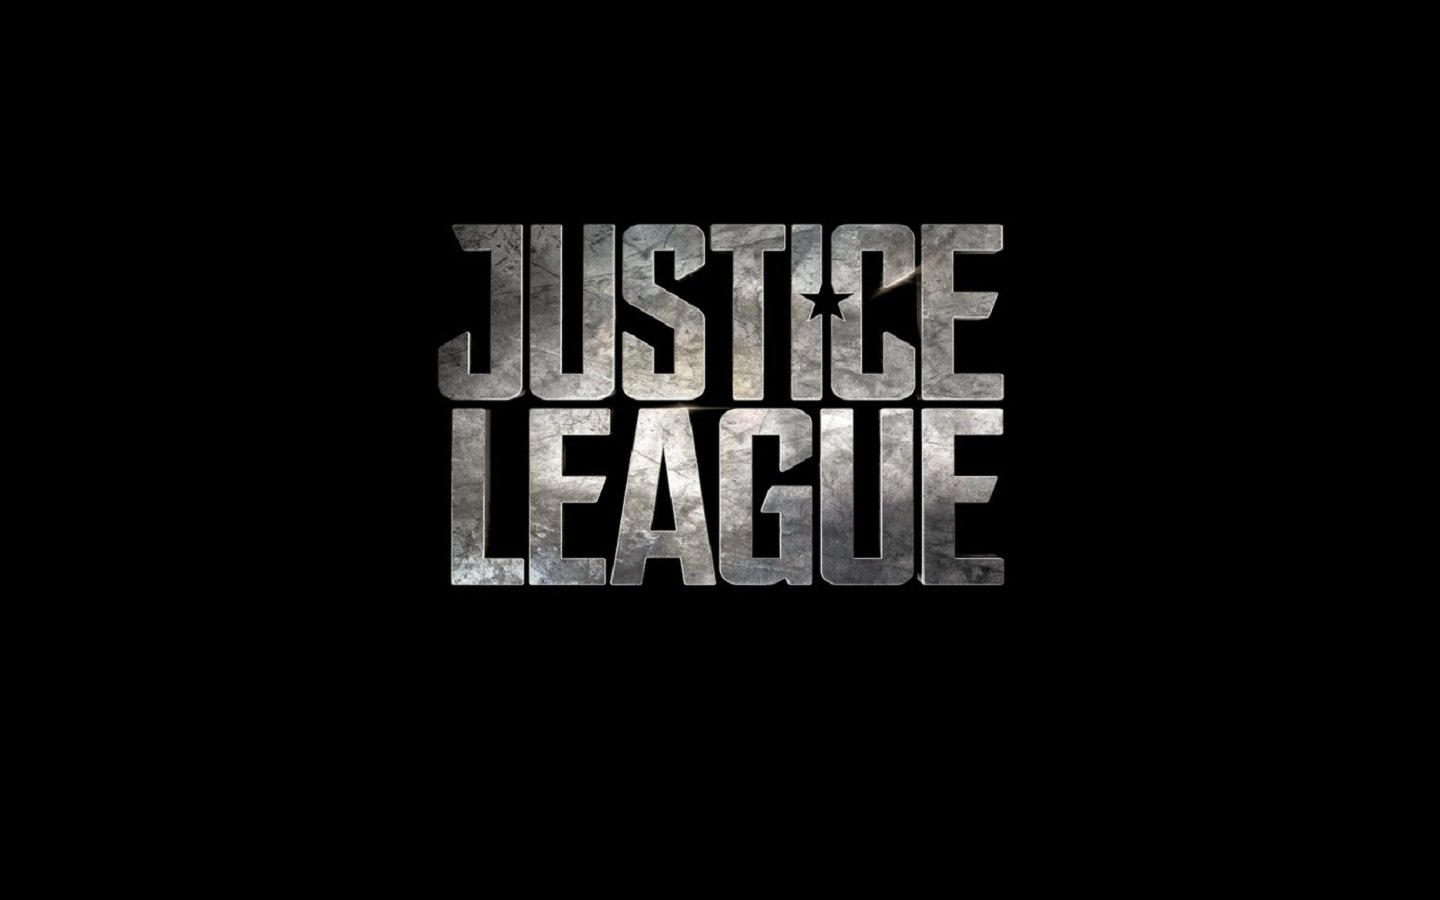 2850759-justice-league-wallpapers.jpg